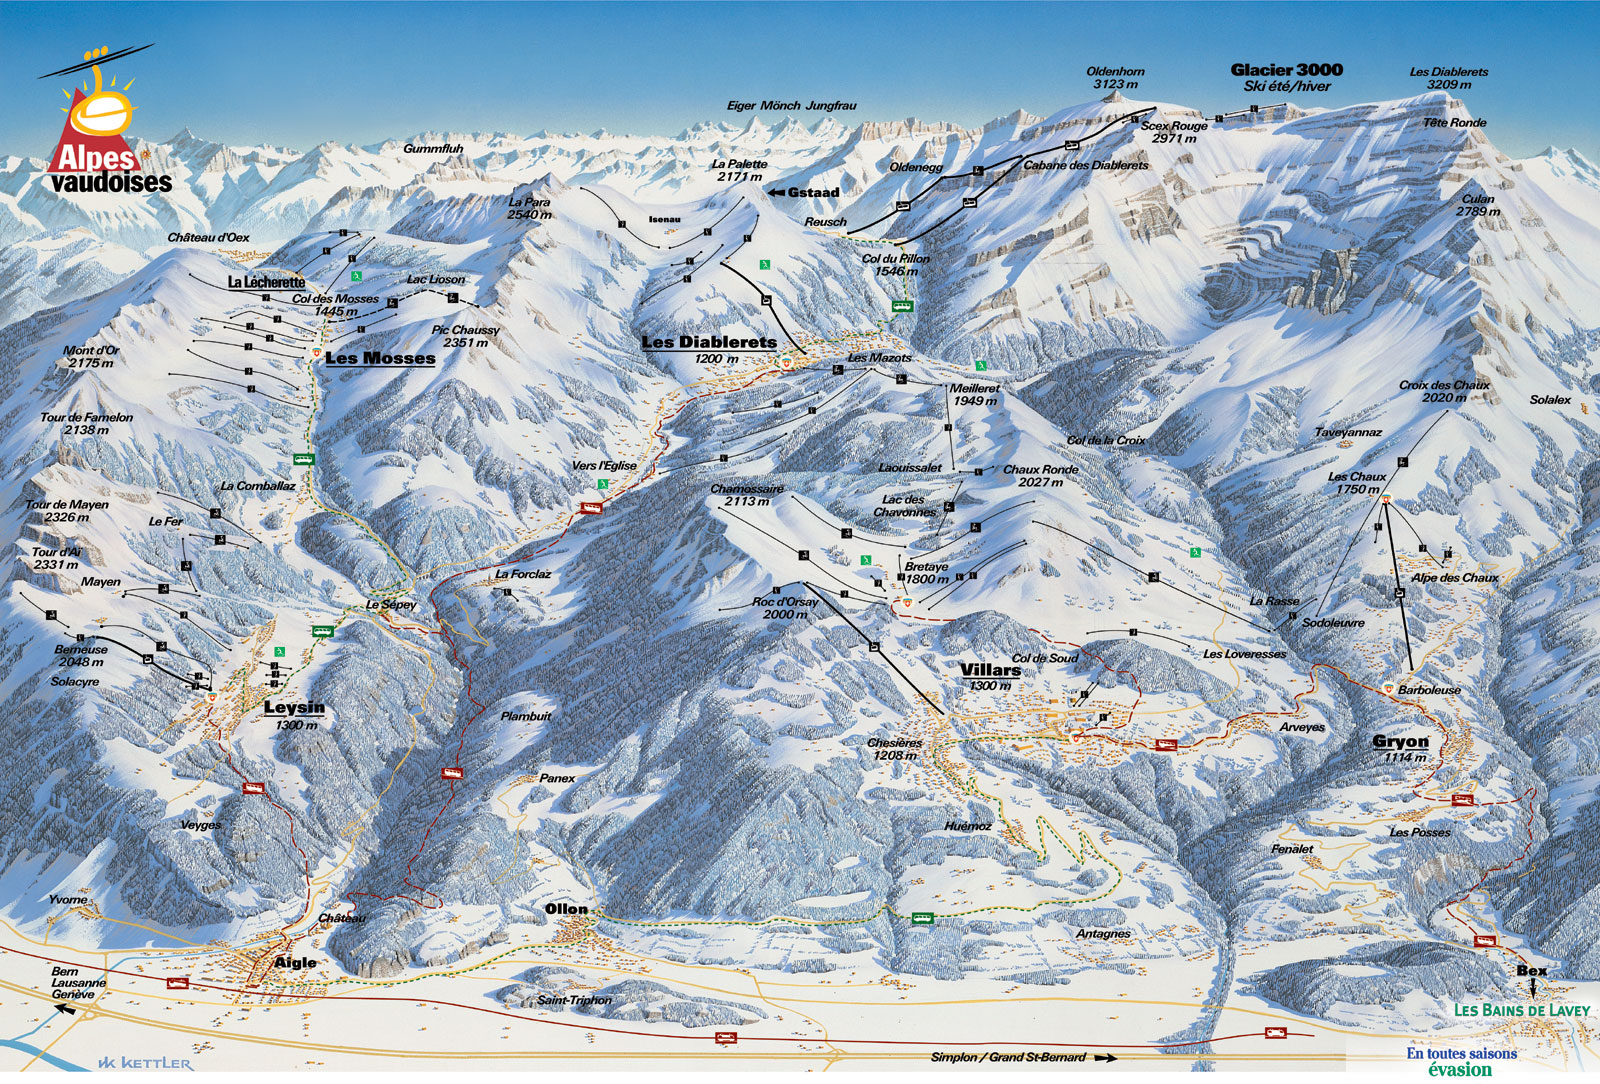 Villars - a ski area with more than 225 km of skiing between 1'300 and 3'000 meters